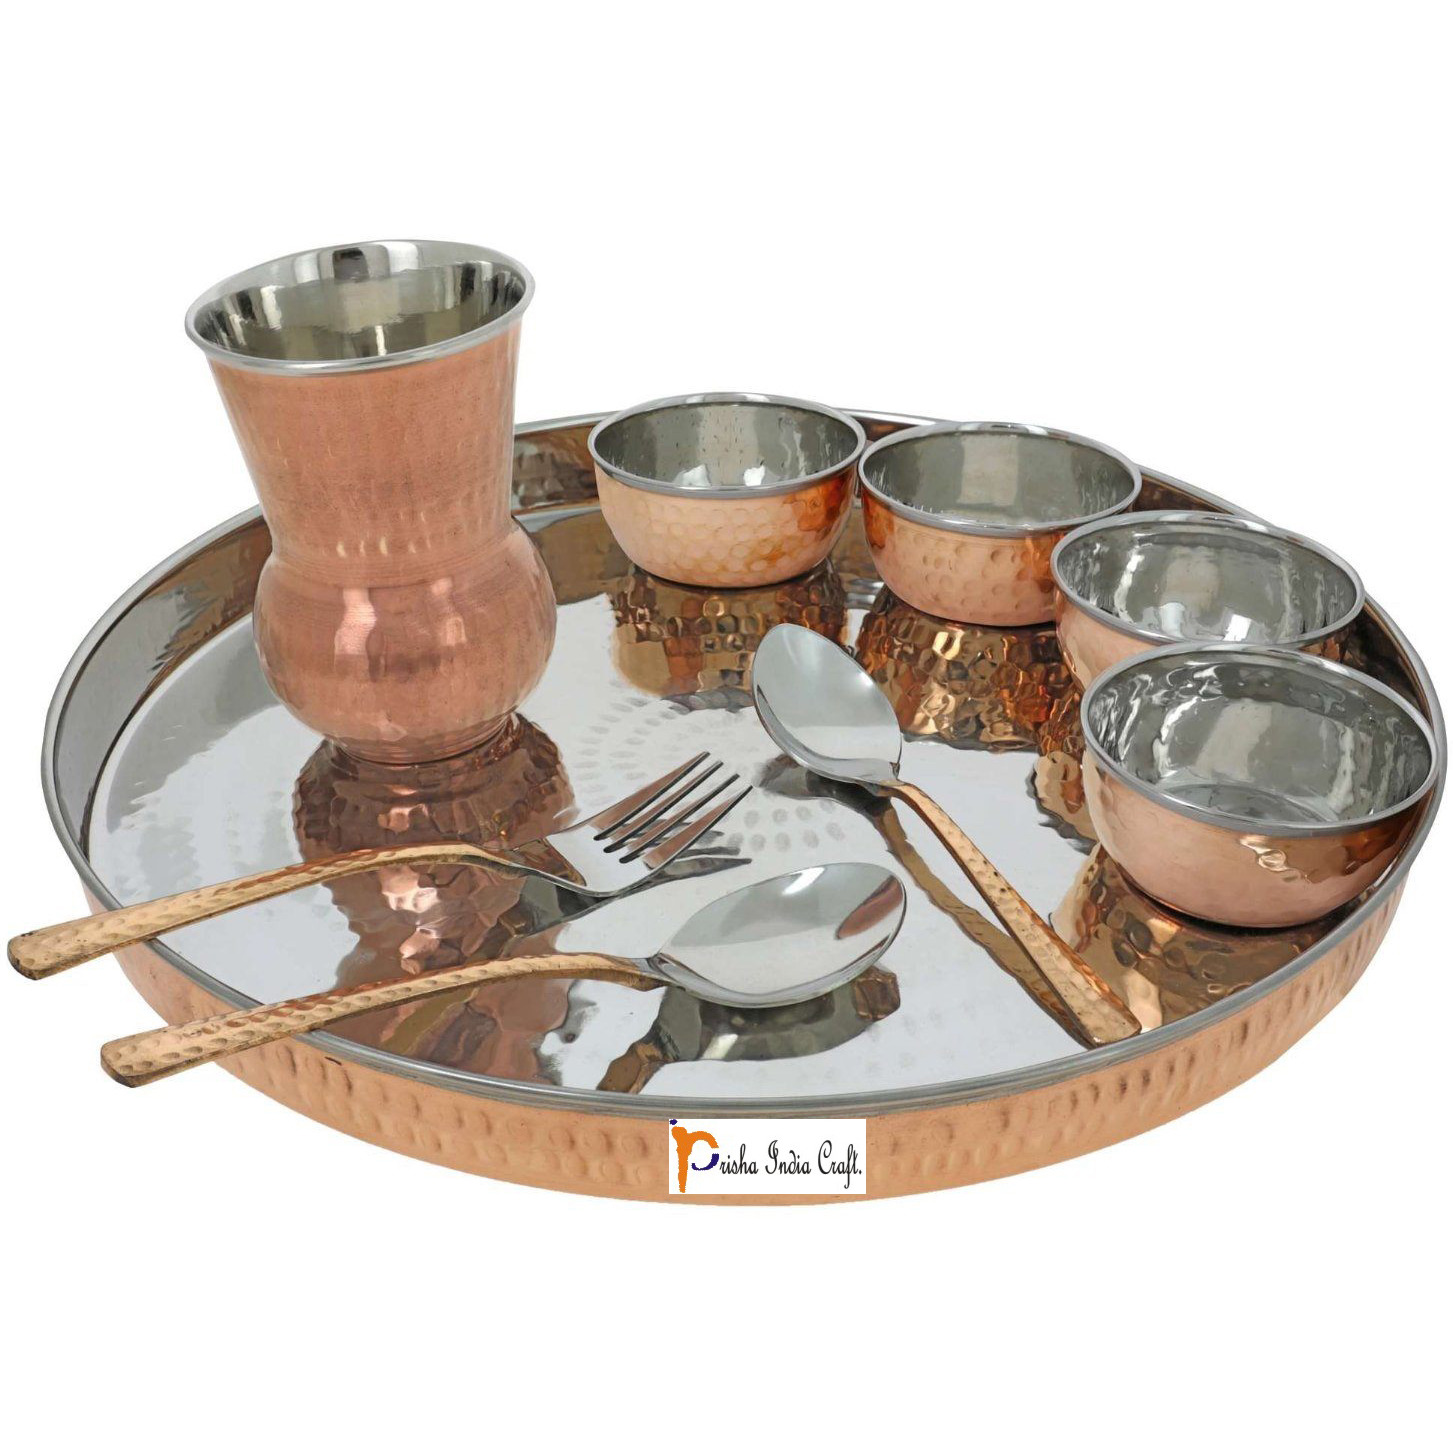 Prisha India Craft B. Set of 6 Dinnerware Traditional Stainless Steel Copper Dinner Set of Thali Plate, Bowls, Glass and Spoons, Dia 13  With 1 Pure Copper Maharaja Pitcher Jug - Christmas Gift